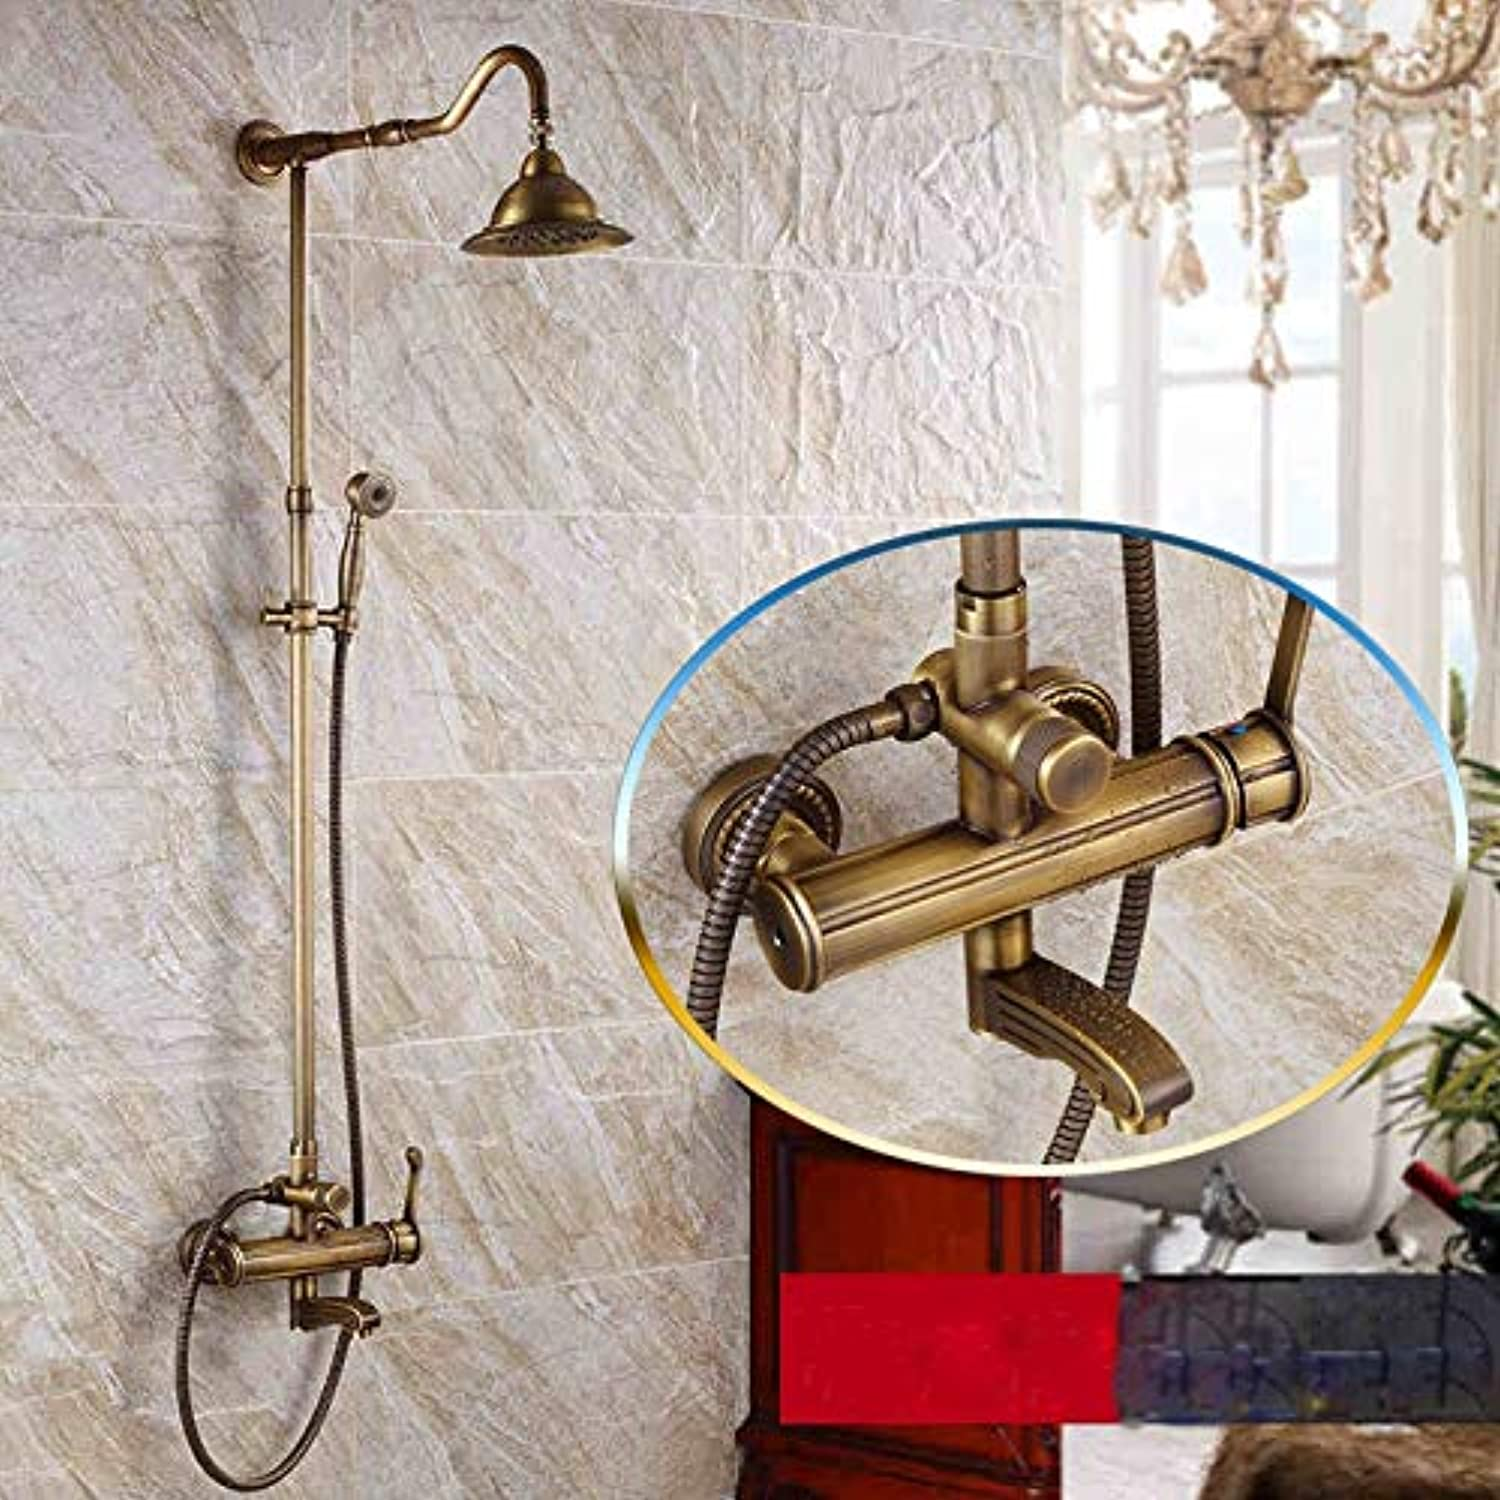 Antique Brass Single Handle Rainfall 8  Shower Head Bathroom Shower Mixer Set Wall Mounted with Hand Shower Tub Spout